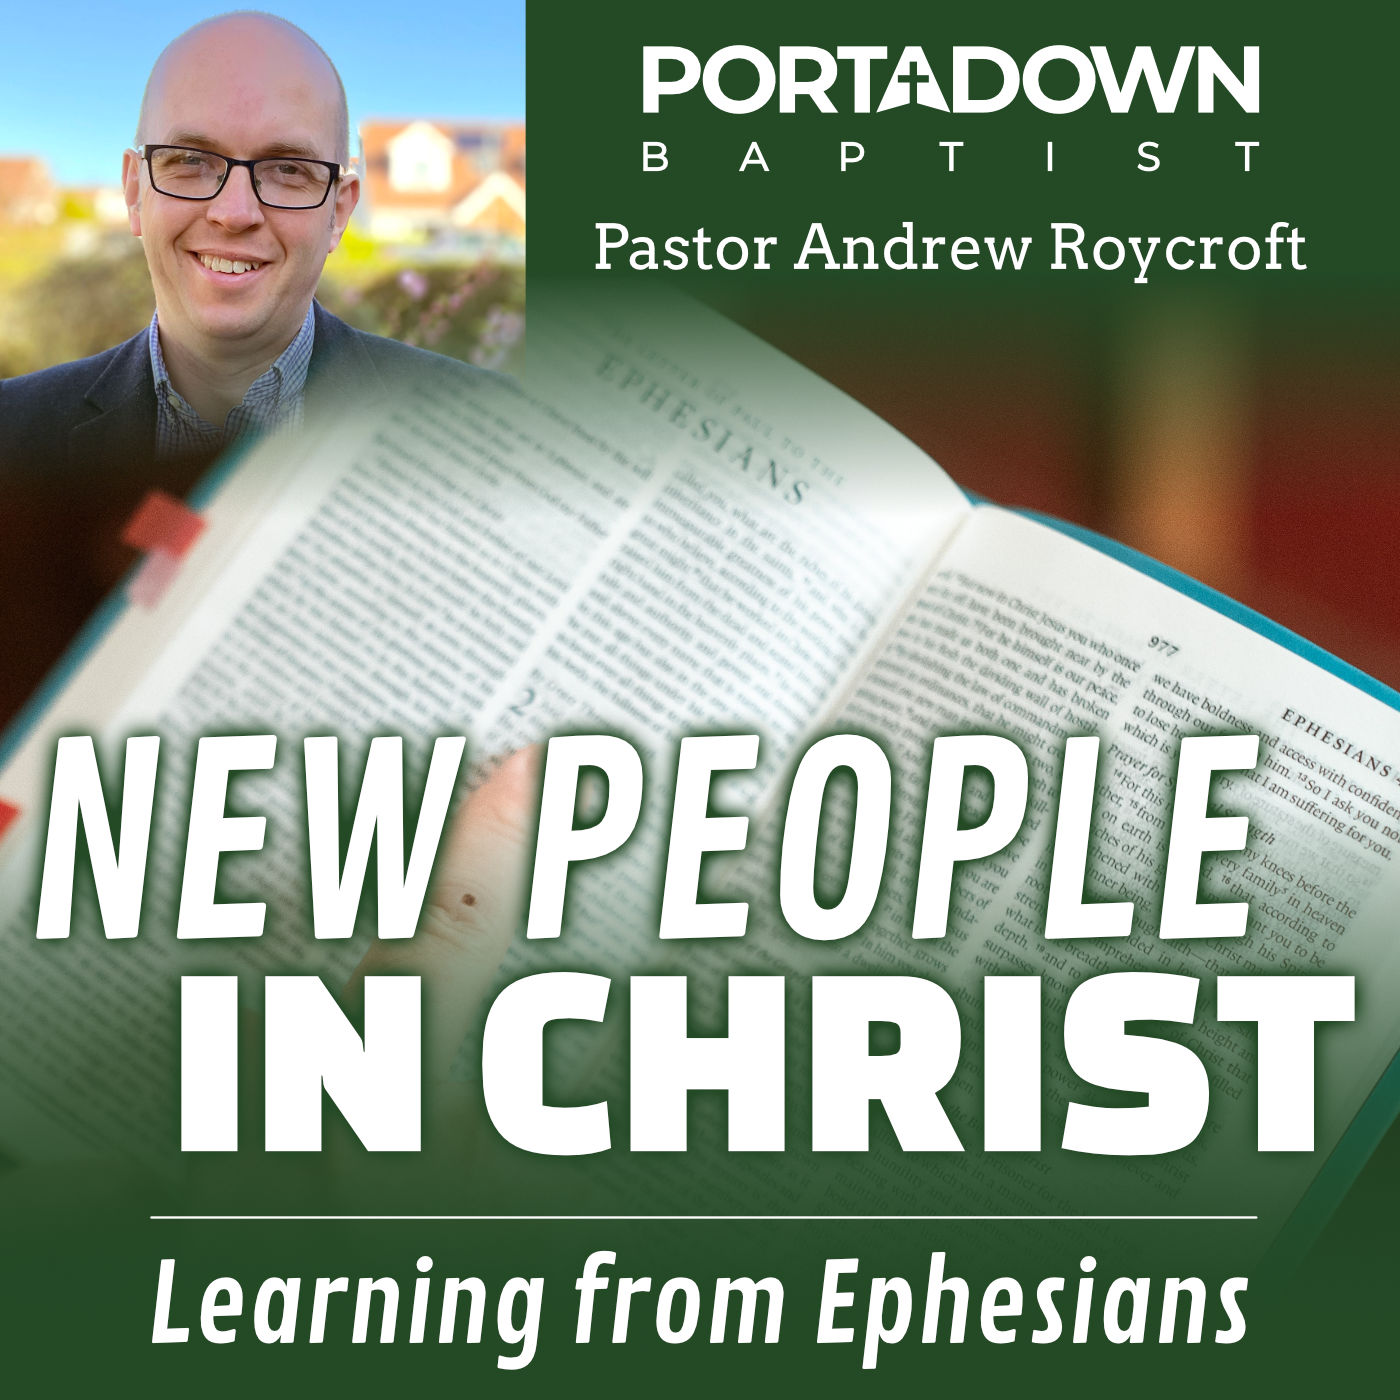 New People In Christ, Ephesians Bible Study Series